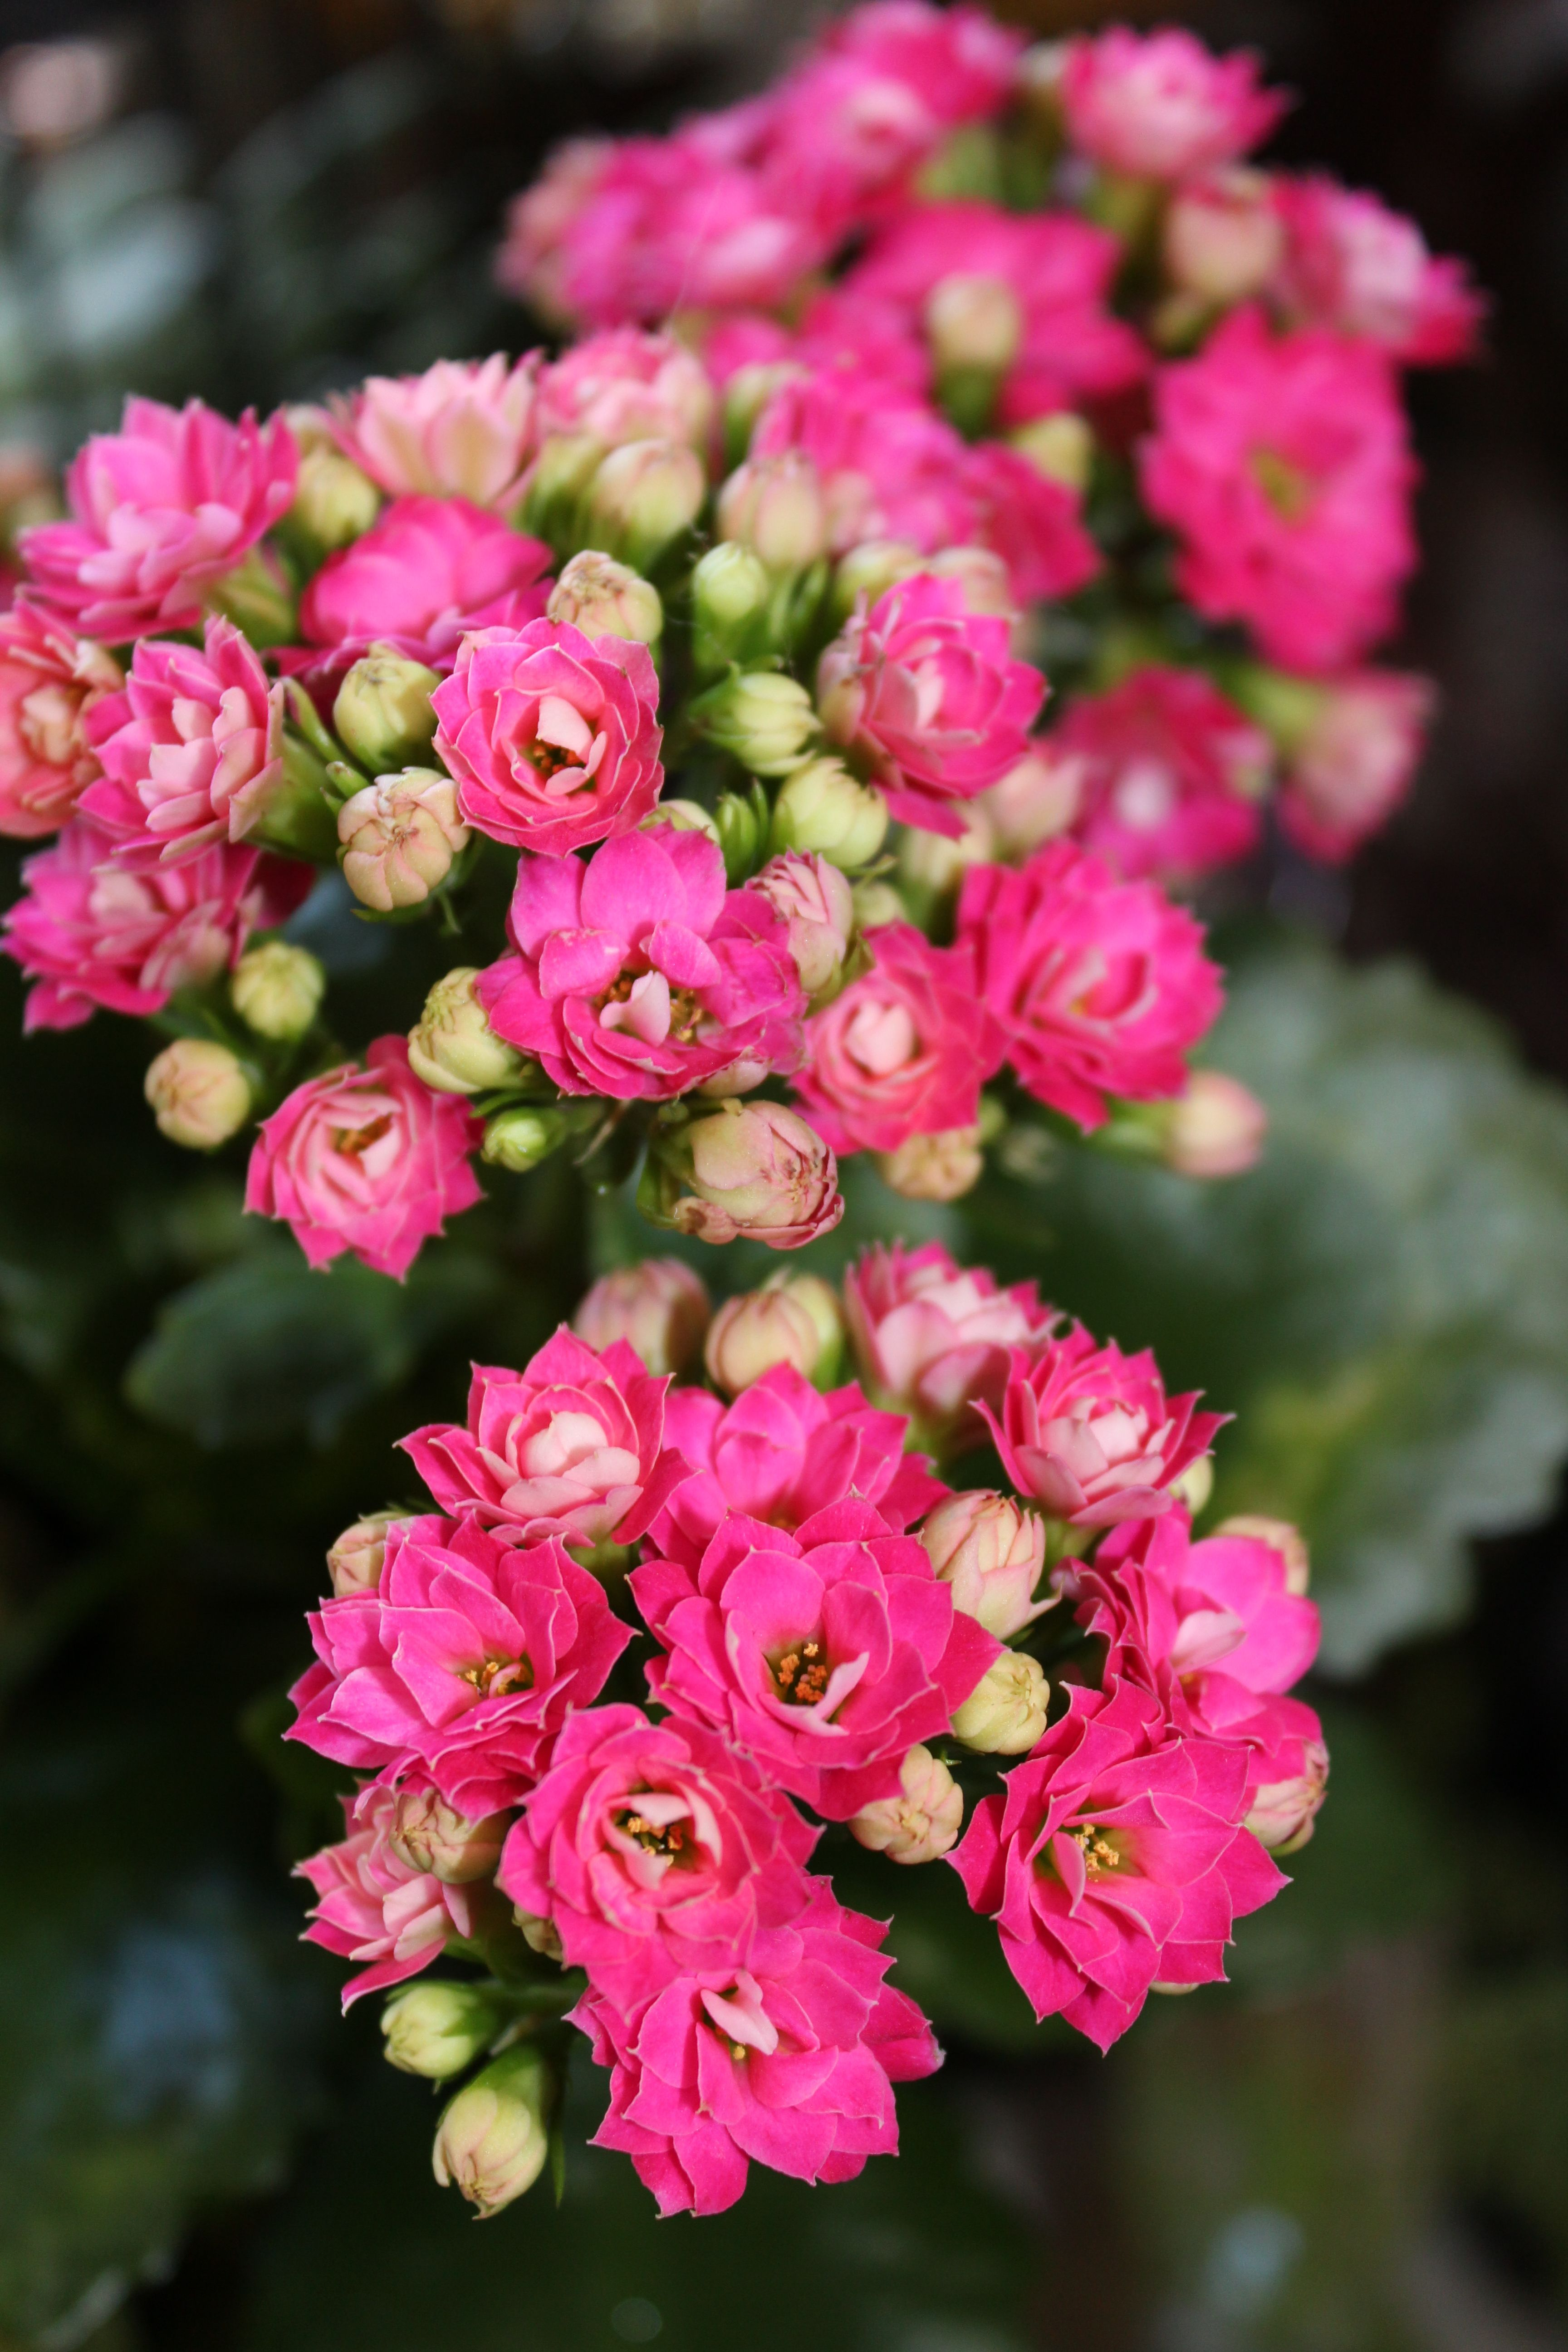 blooming kalanchoe care plants pinterest plants flowers and gardens. Black Bedroom Furniture Sets. Home Design Ideas